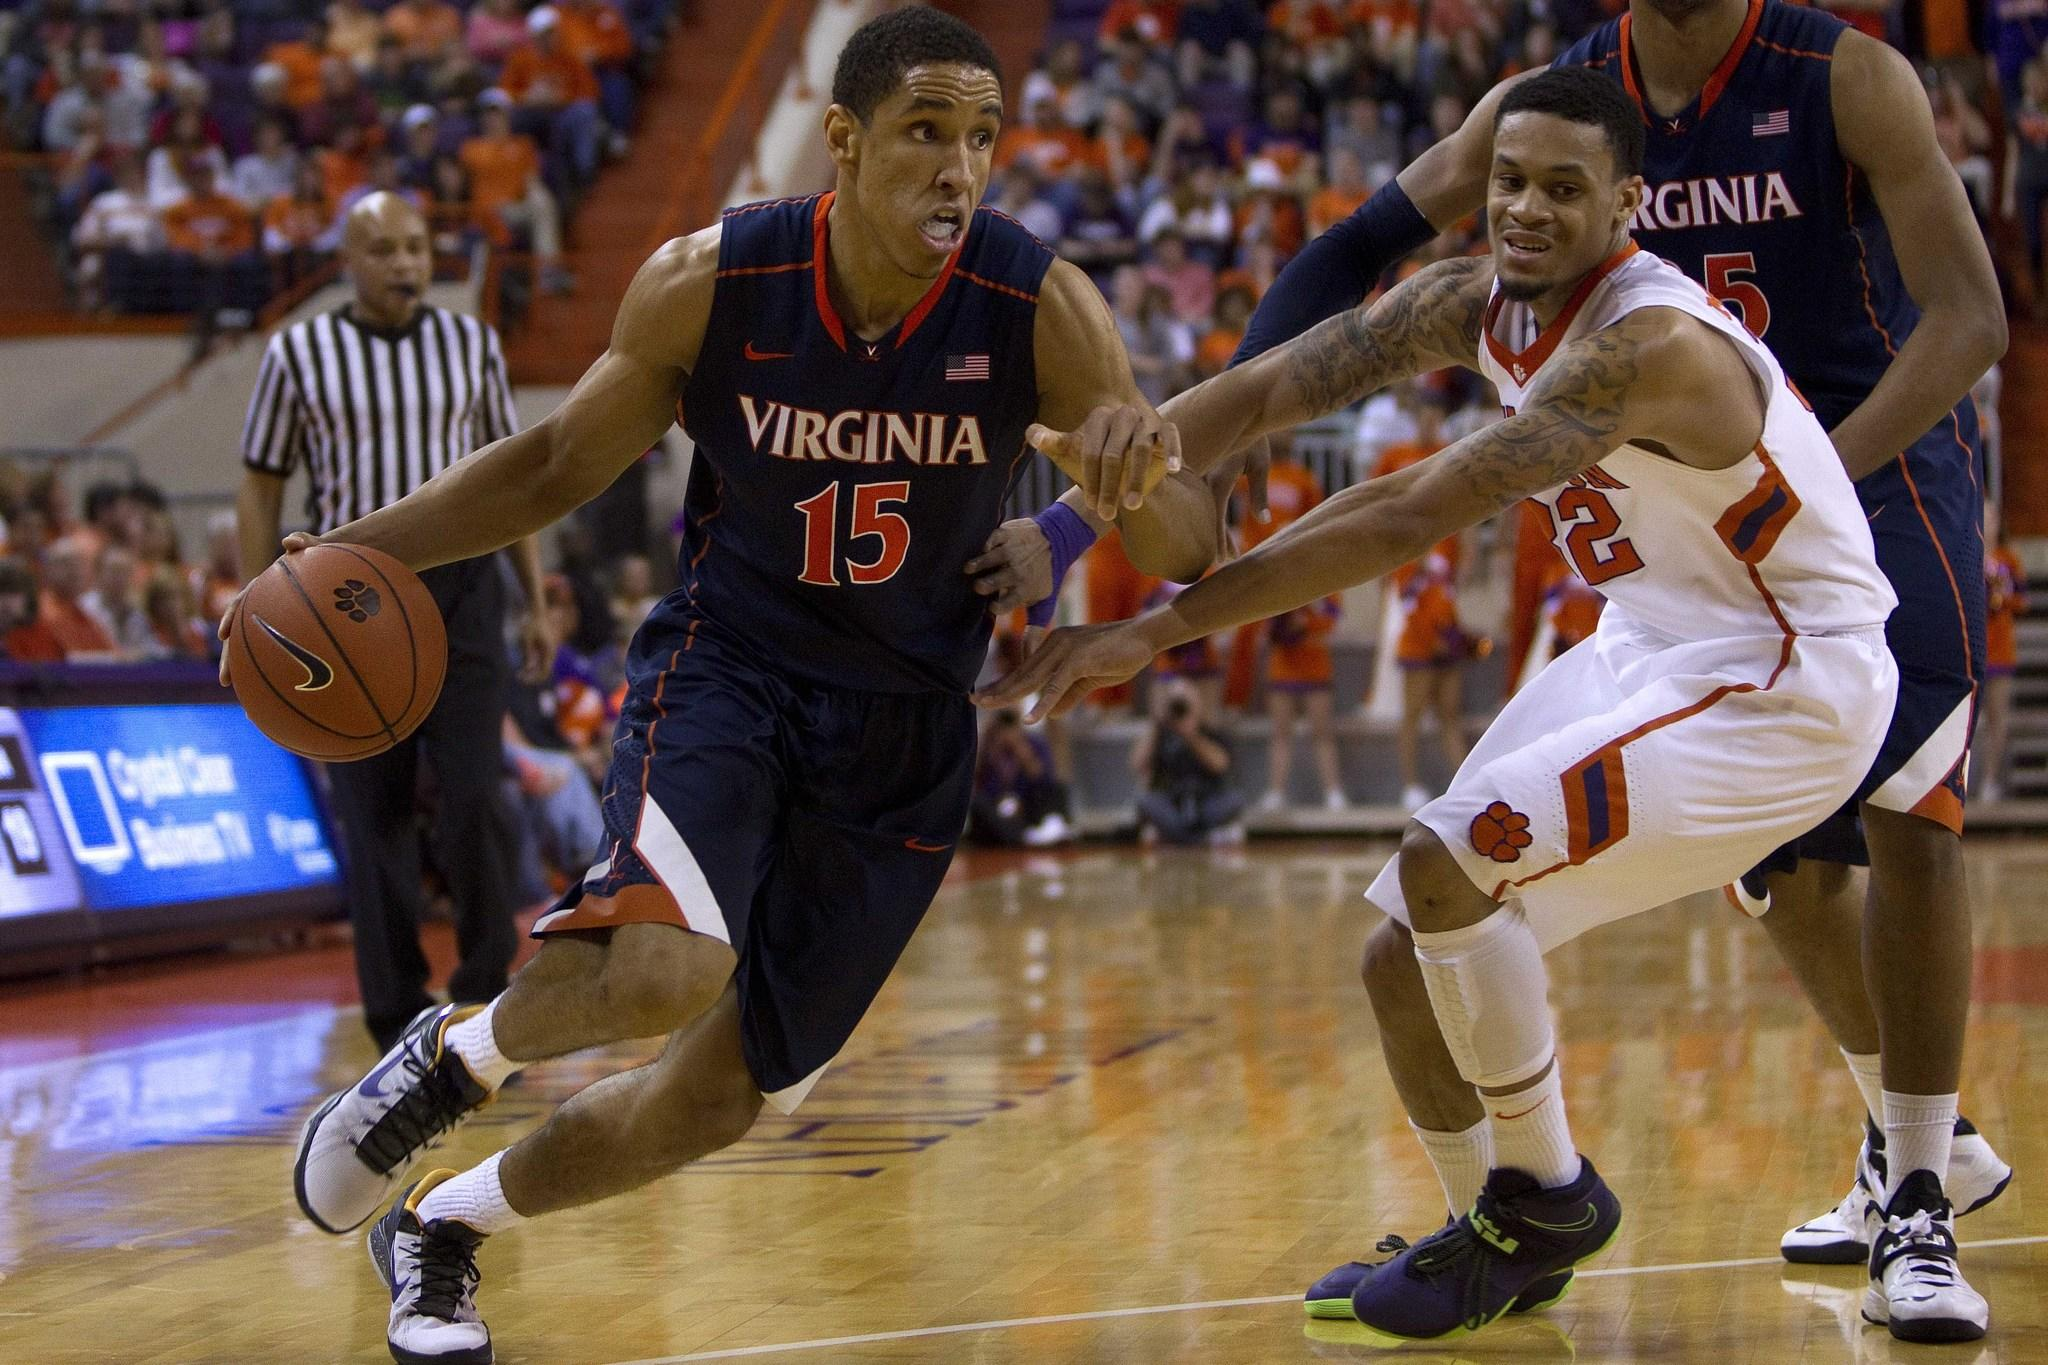 Virginia guard Malcolm Brogdon drives past Clemson forward K.J. McDaniels on Saturday in Clemson, S.C.